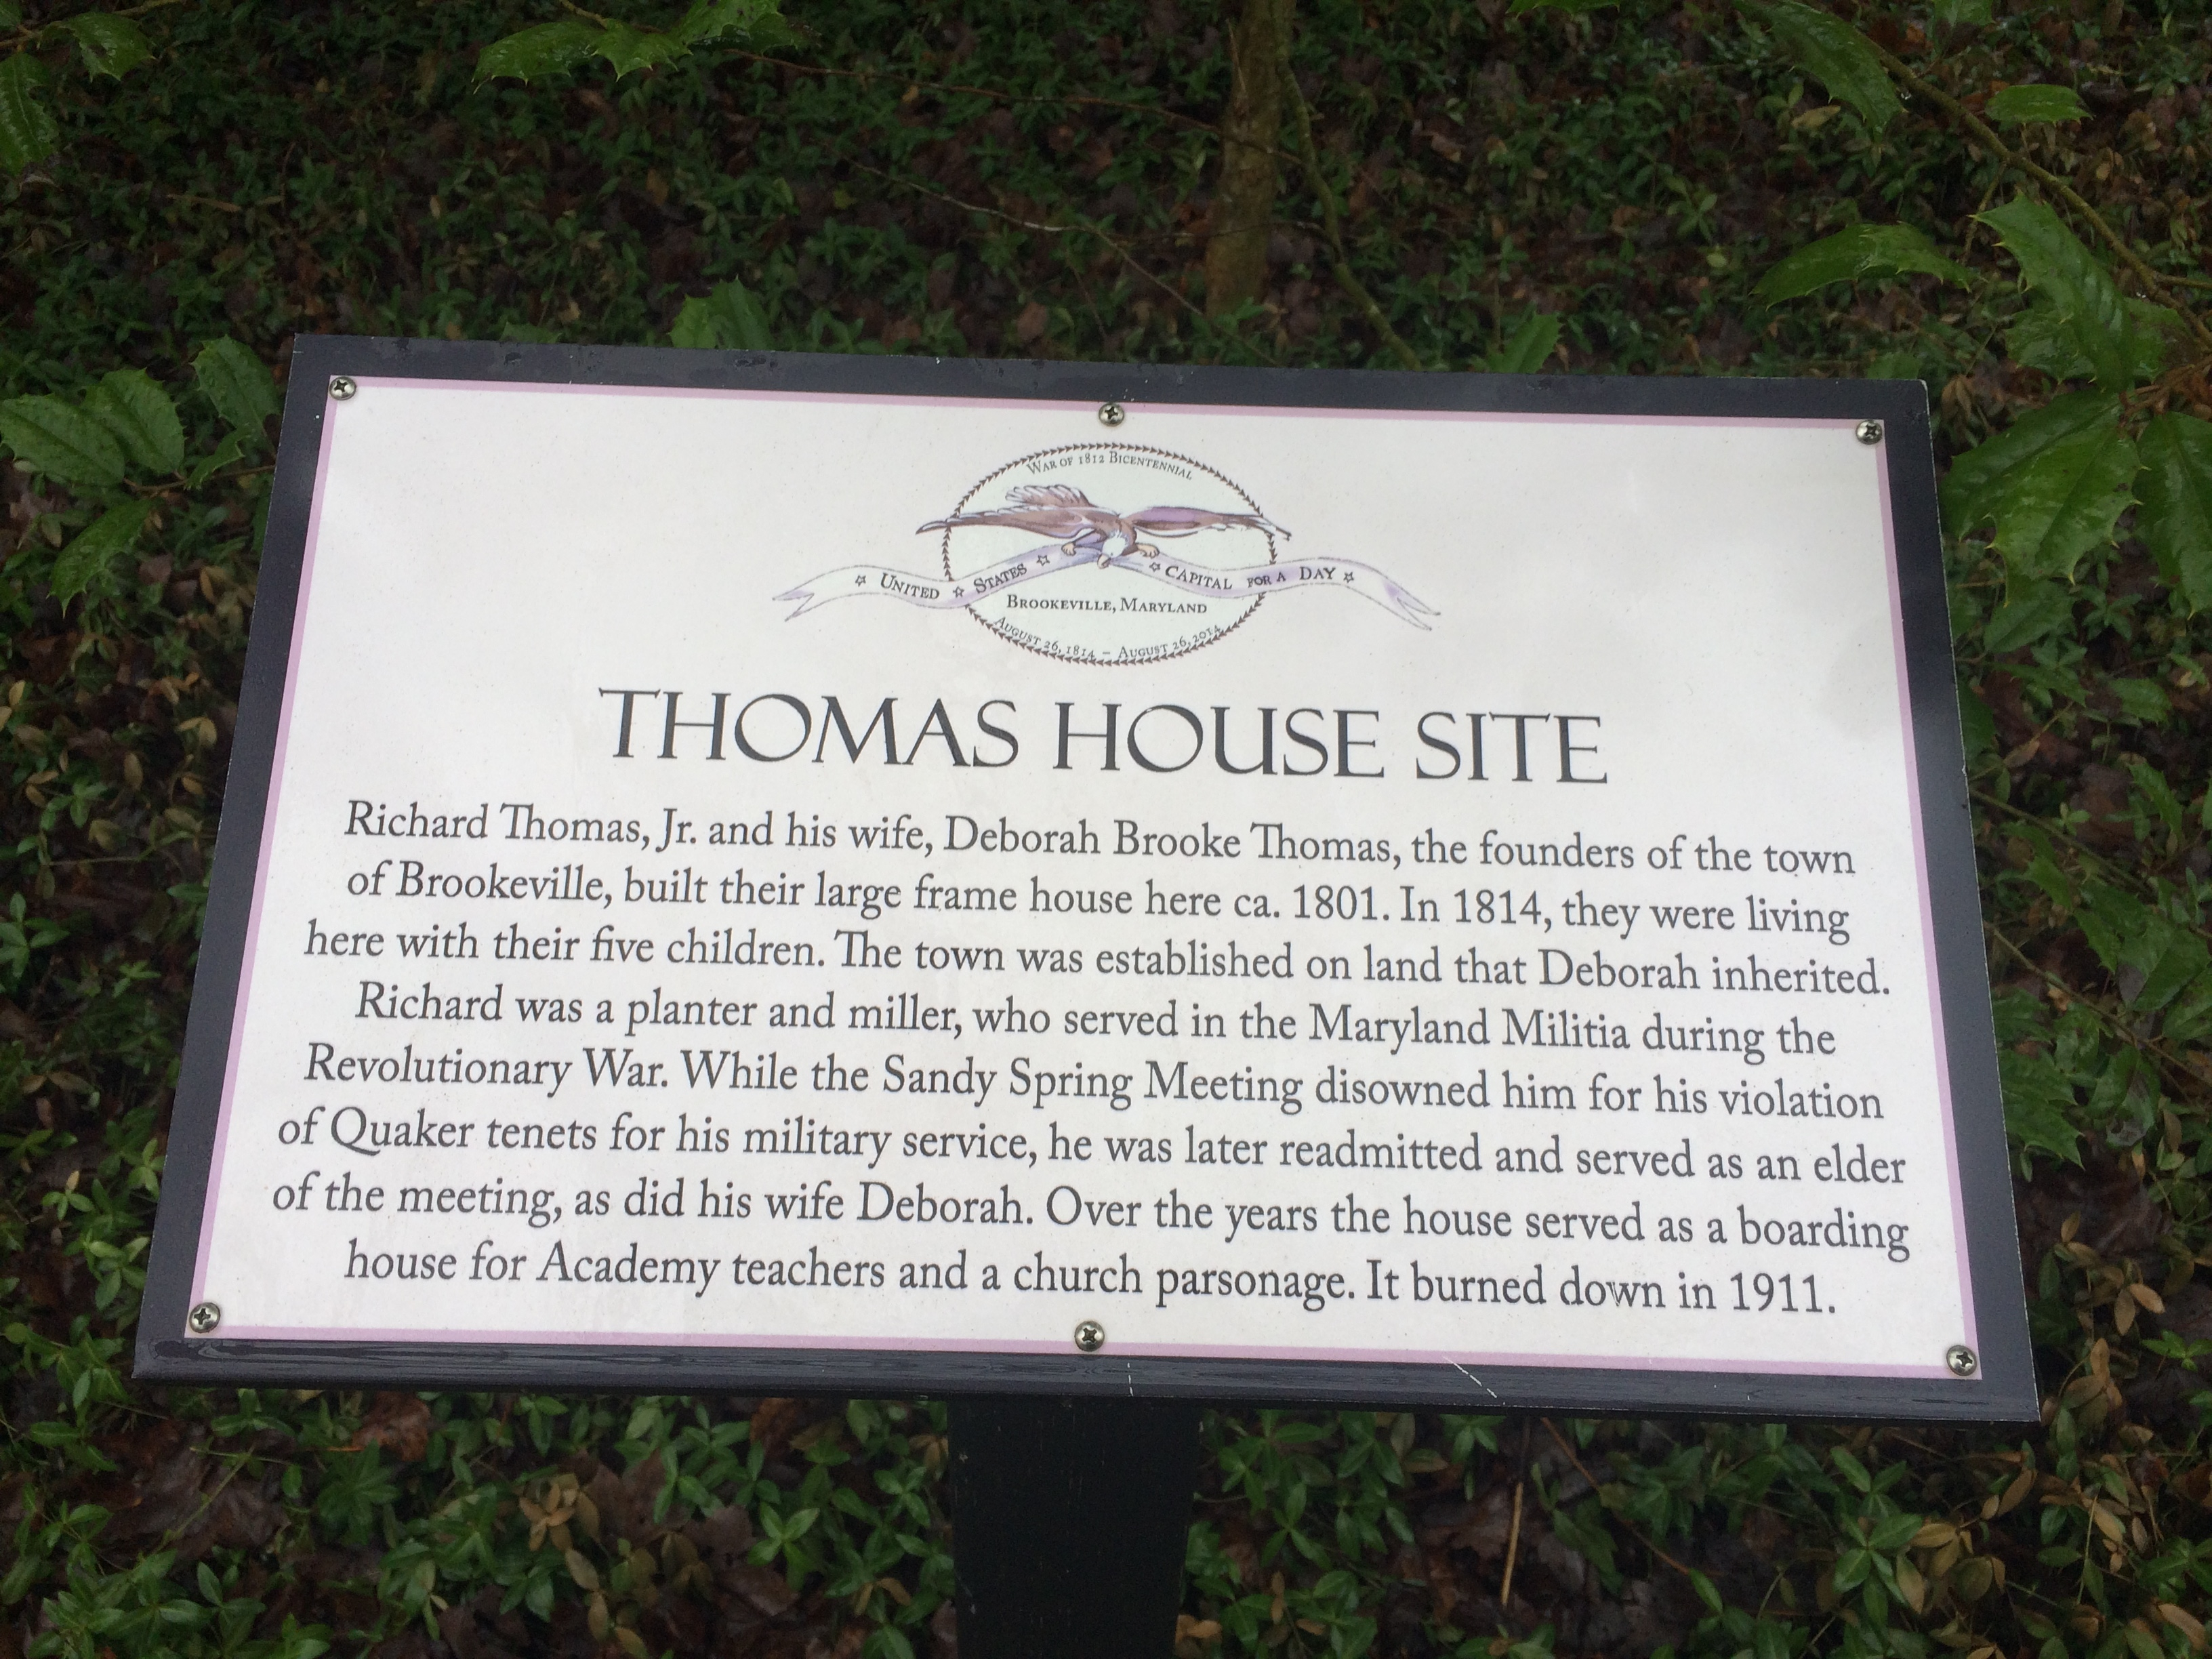 Thomas House Site Marker